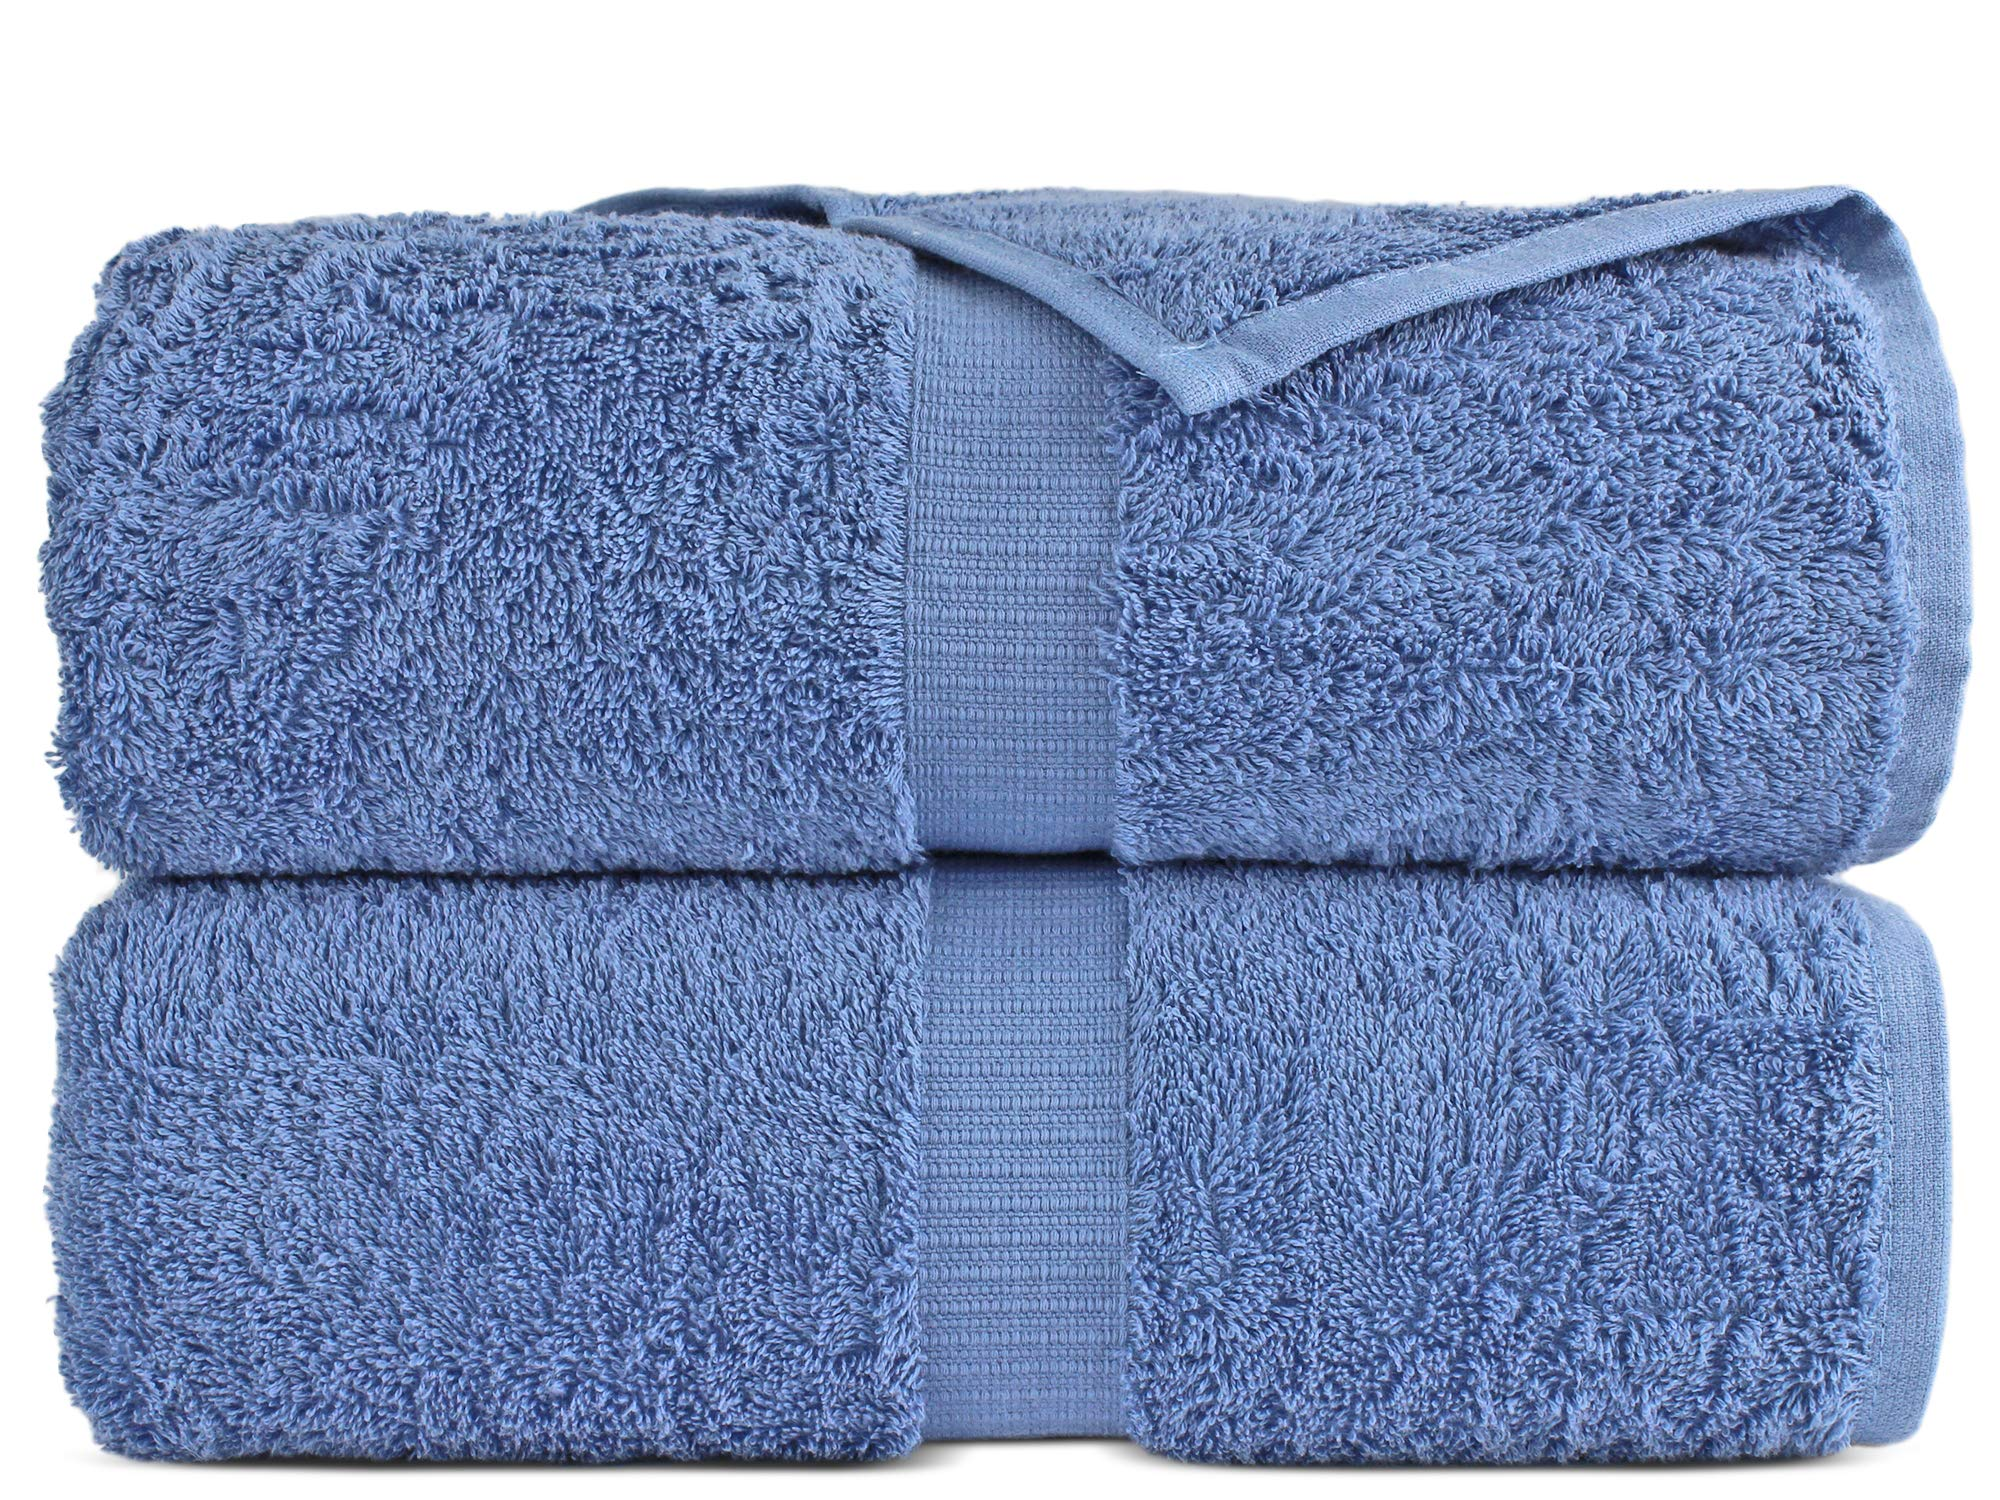 100% Luxury Turkish Cotton, Eco-Friendly, Soft and Super Absorbent 35'' x 70'' Large Bath Sheets (Wedgewood, Set of 2)